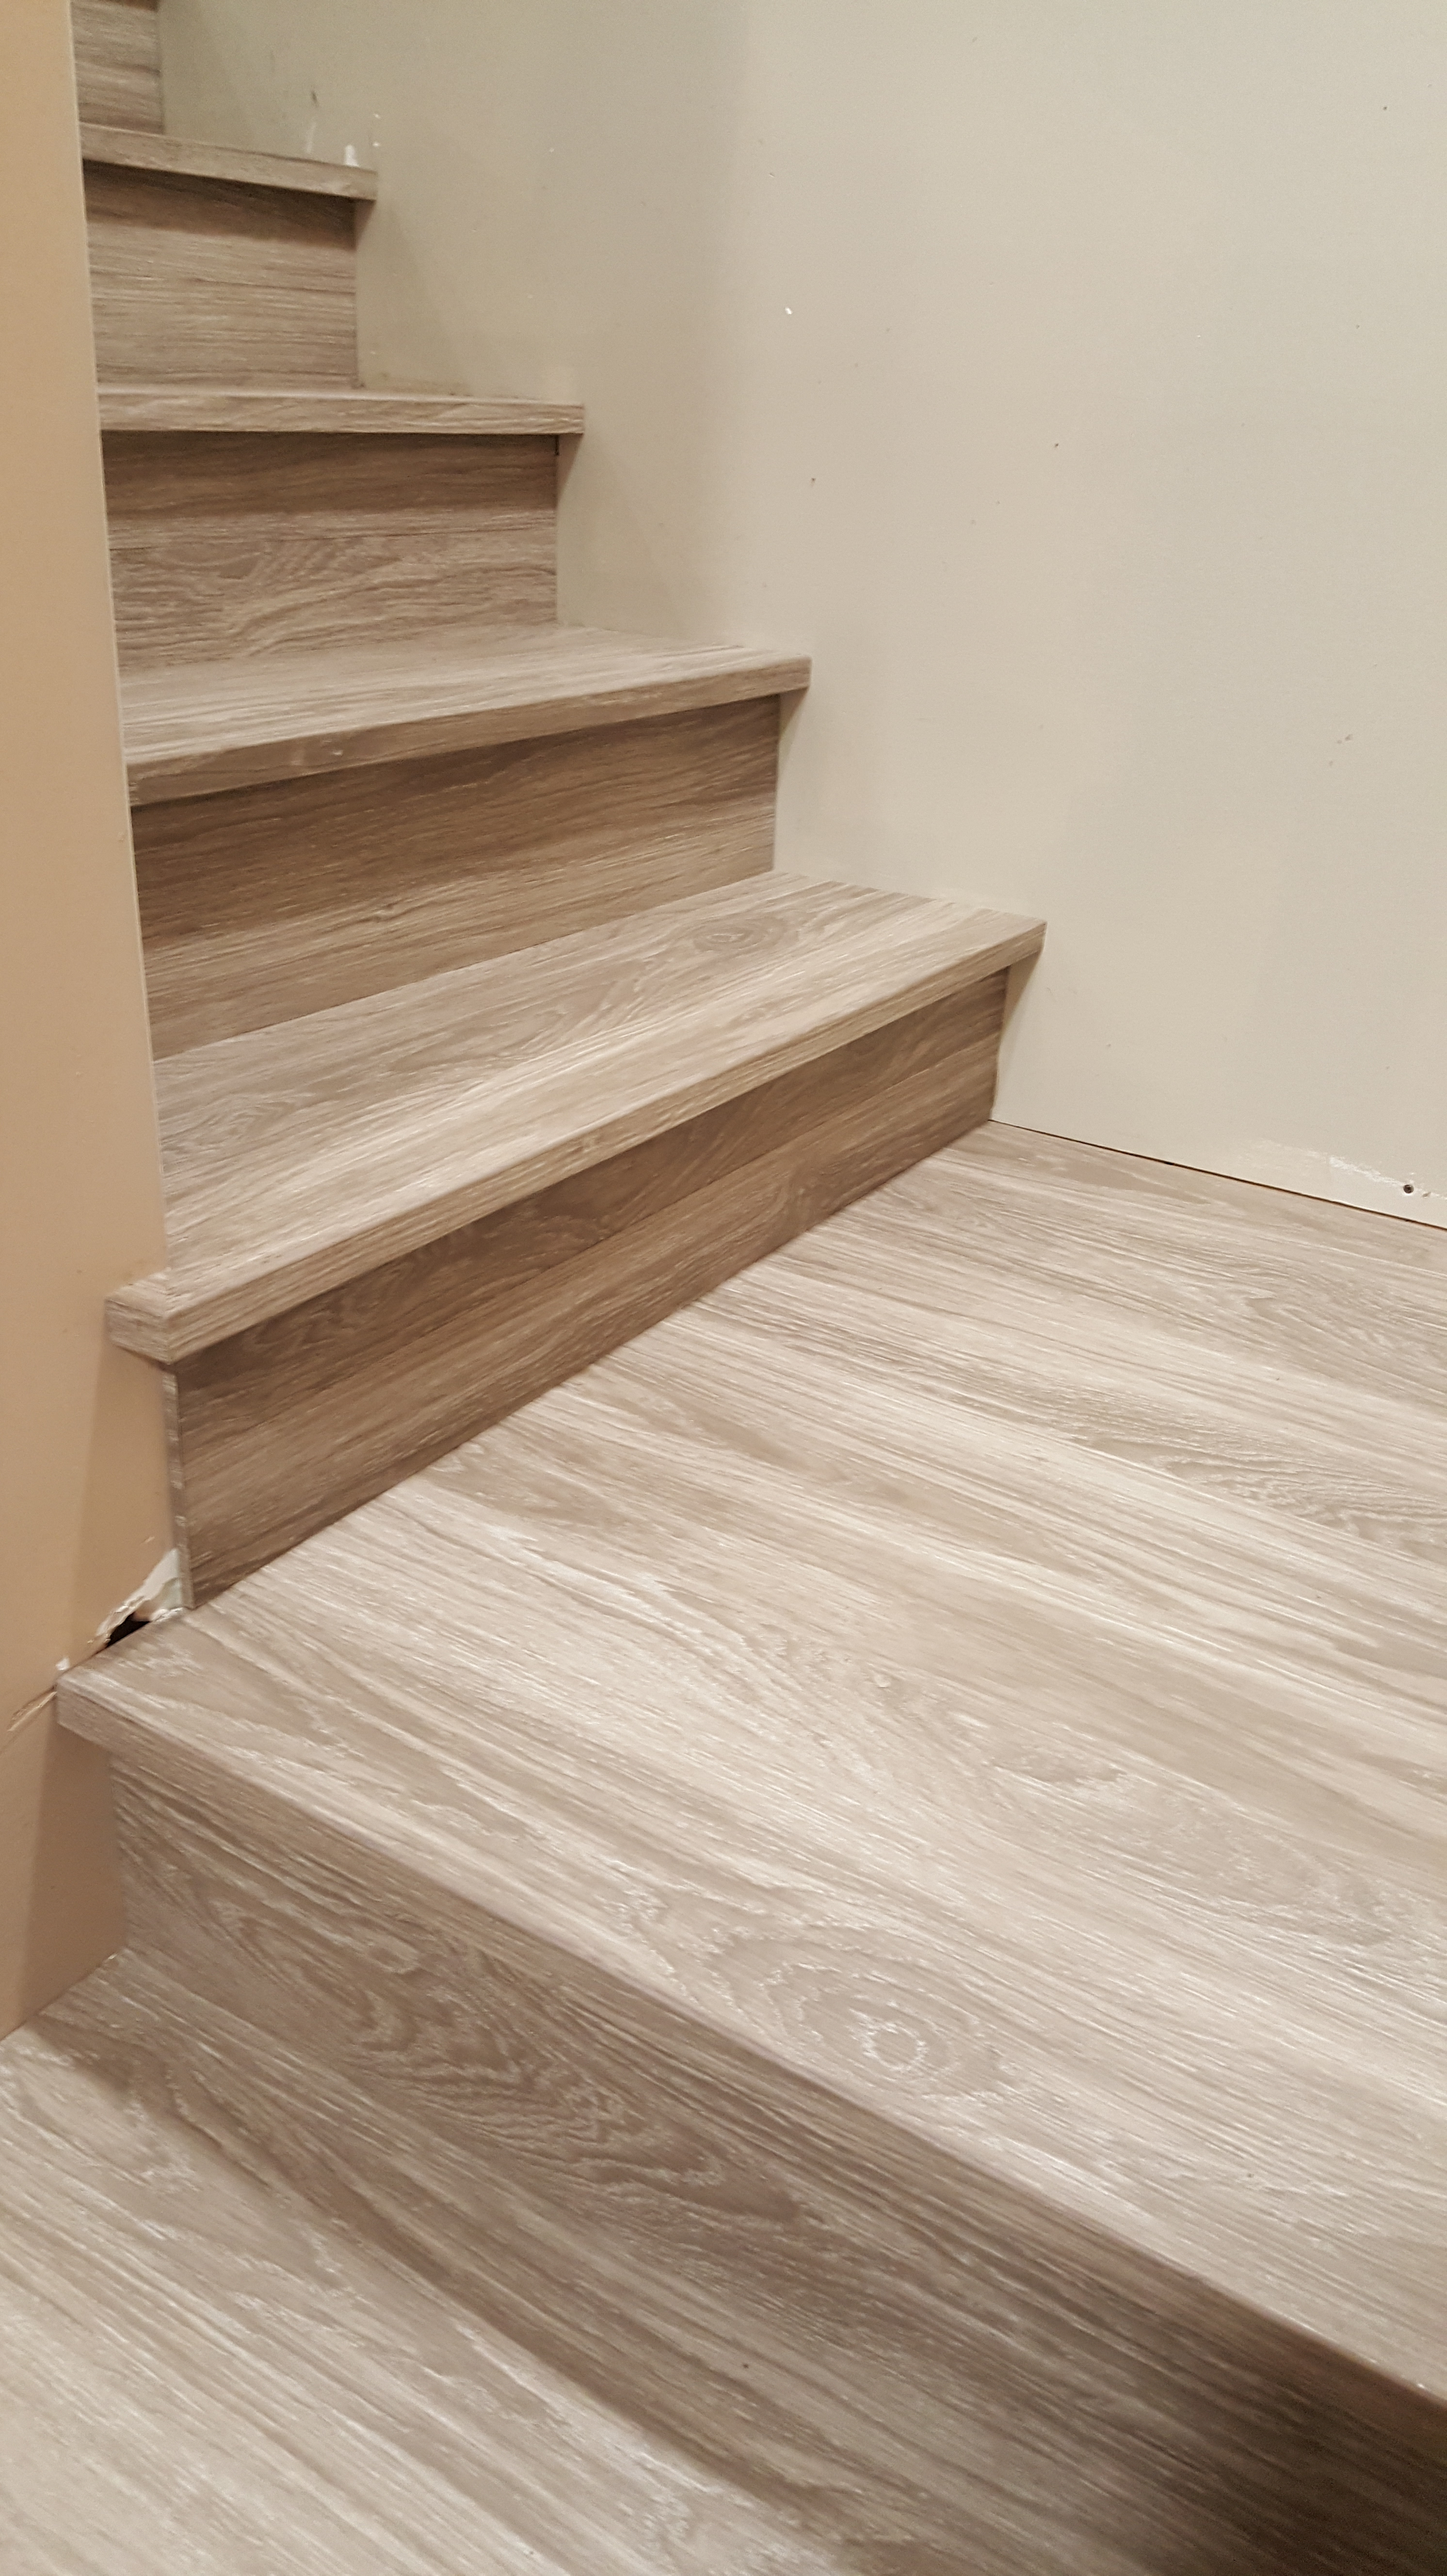 Stair Nosings Returns Are Another Product We Provide In Tandem With Our  Stair Nosings. Sometime You Have A Stair That Leaves Open Side Faces; You  Will Need ...